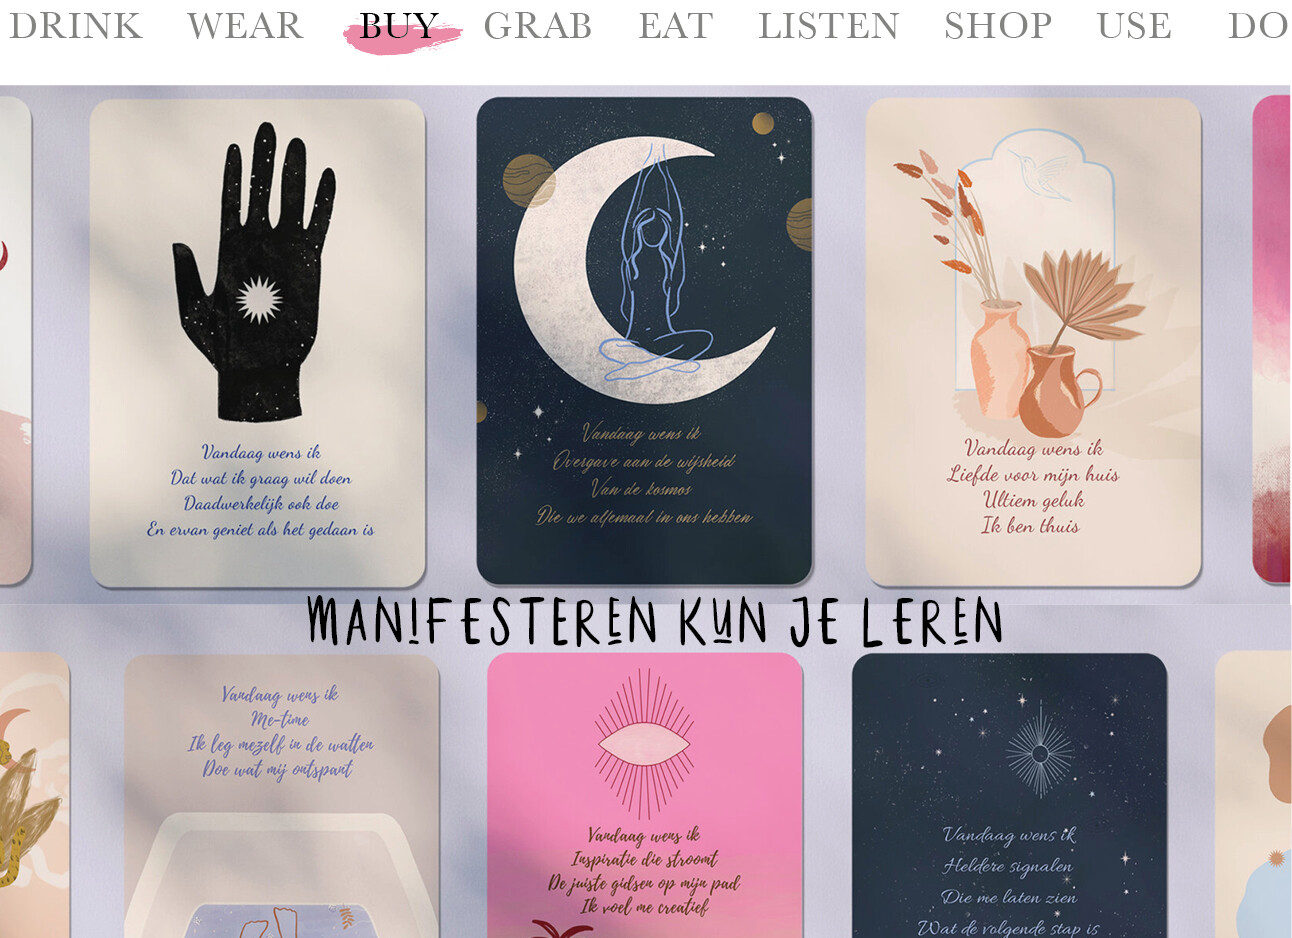 Today we buy manifesteren kun je leren